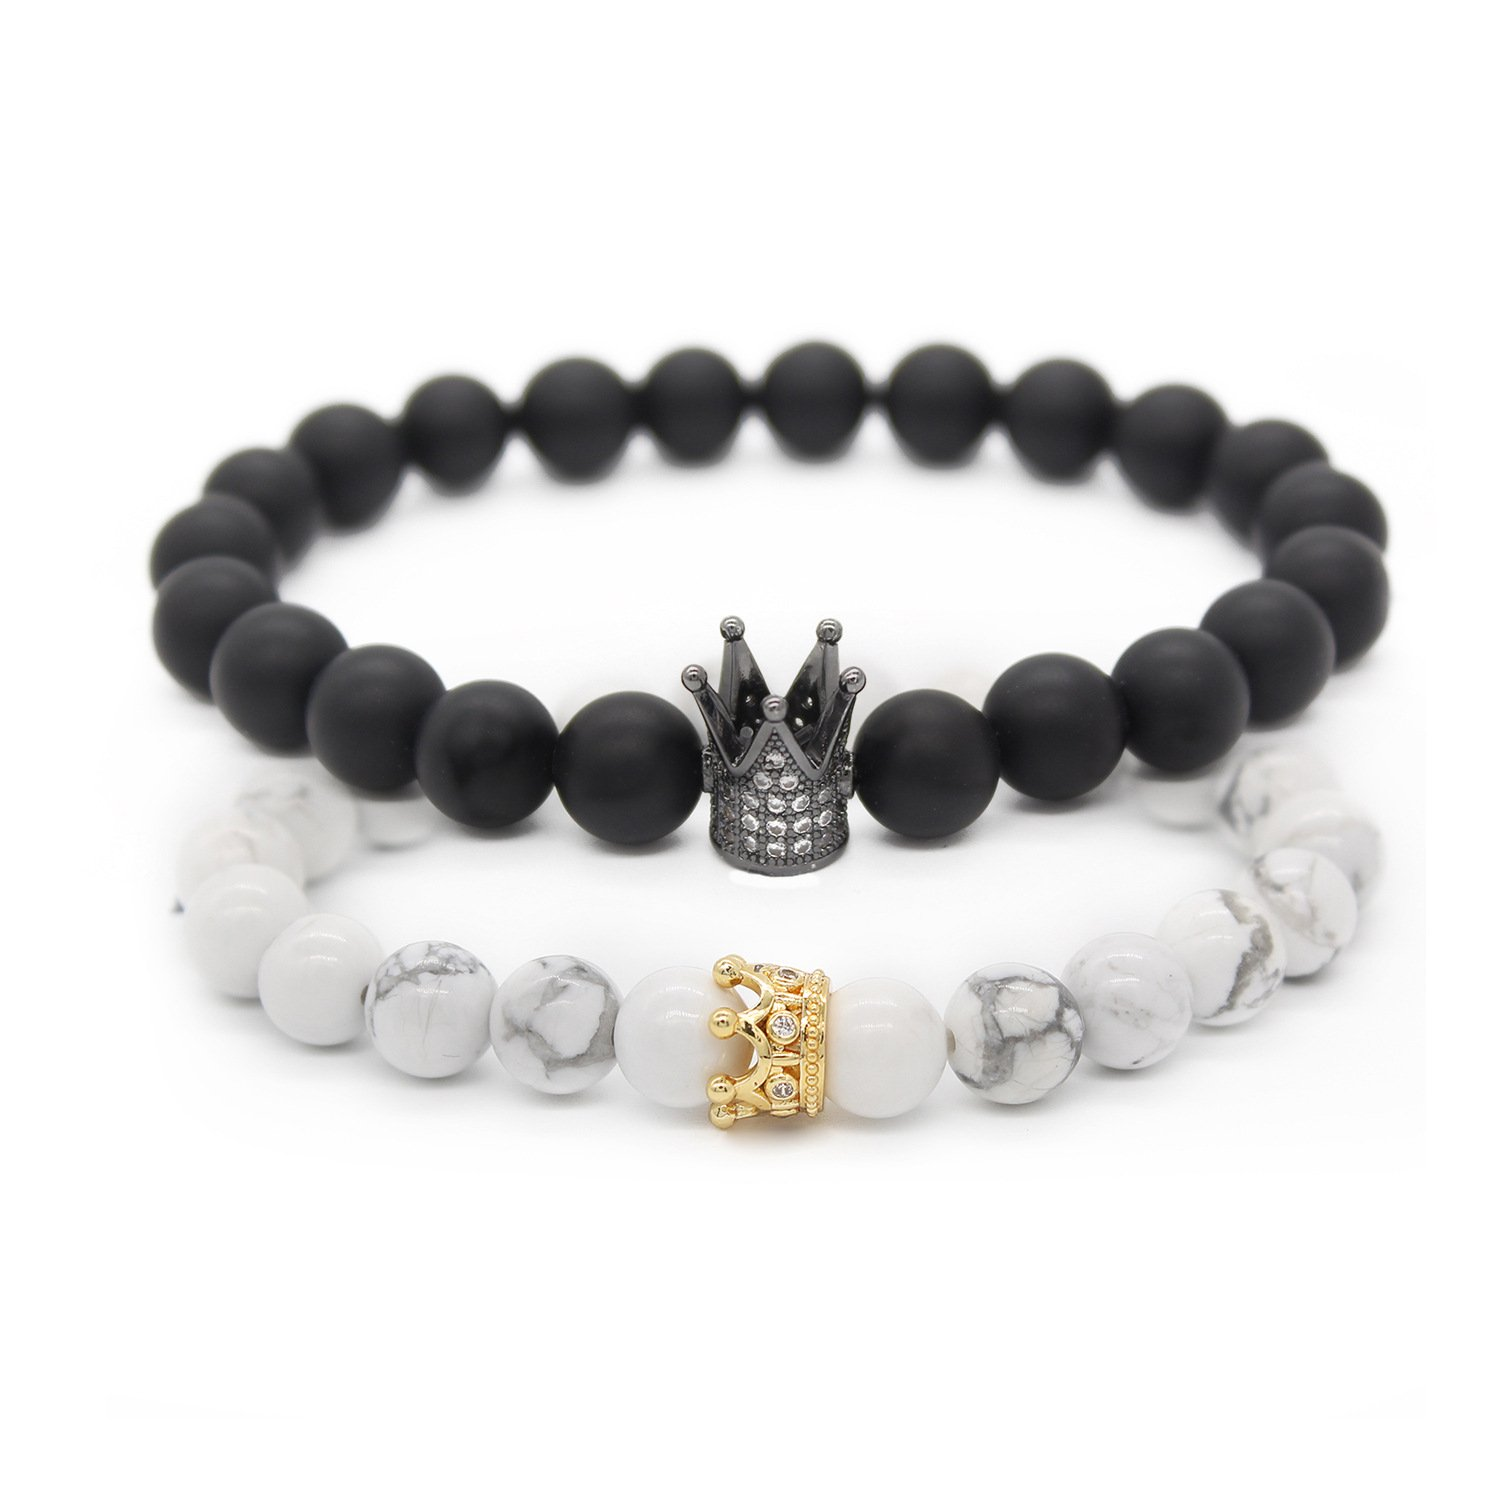 POSHFEEL 8mm Black Matte Agate & White Howlite Stone CZ Crown King Beads His and Hers Couple Bracelet, 7.5''